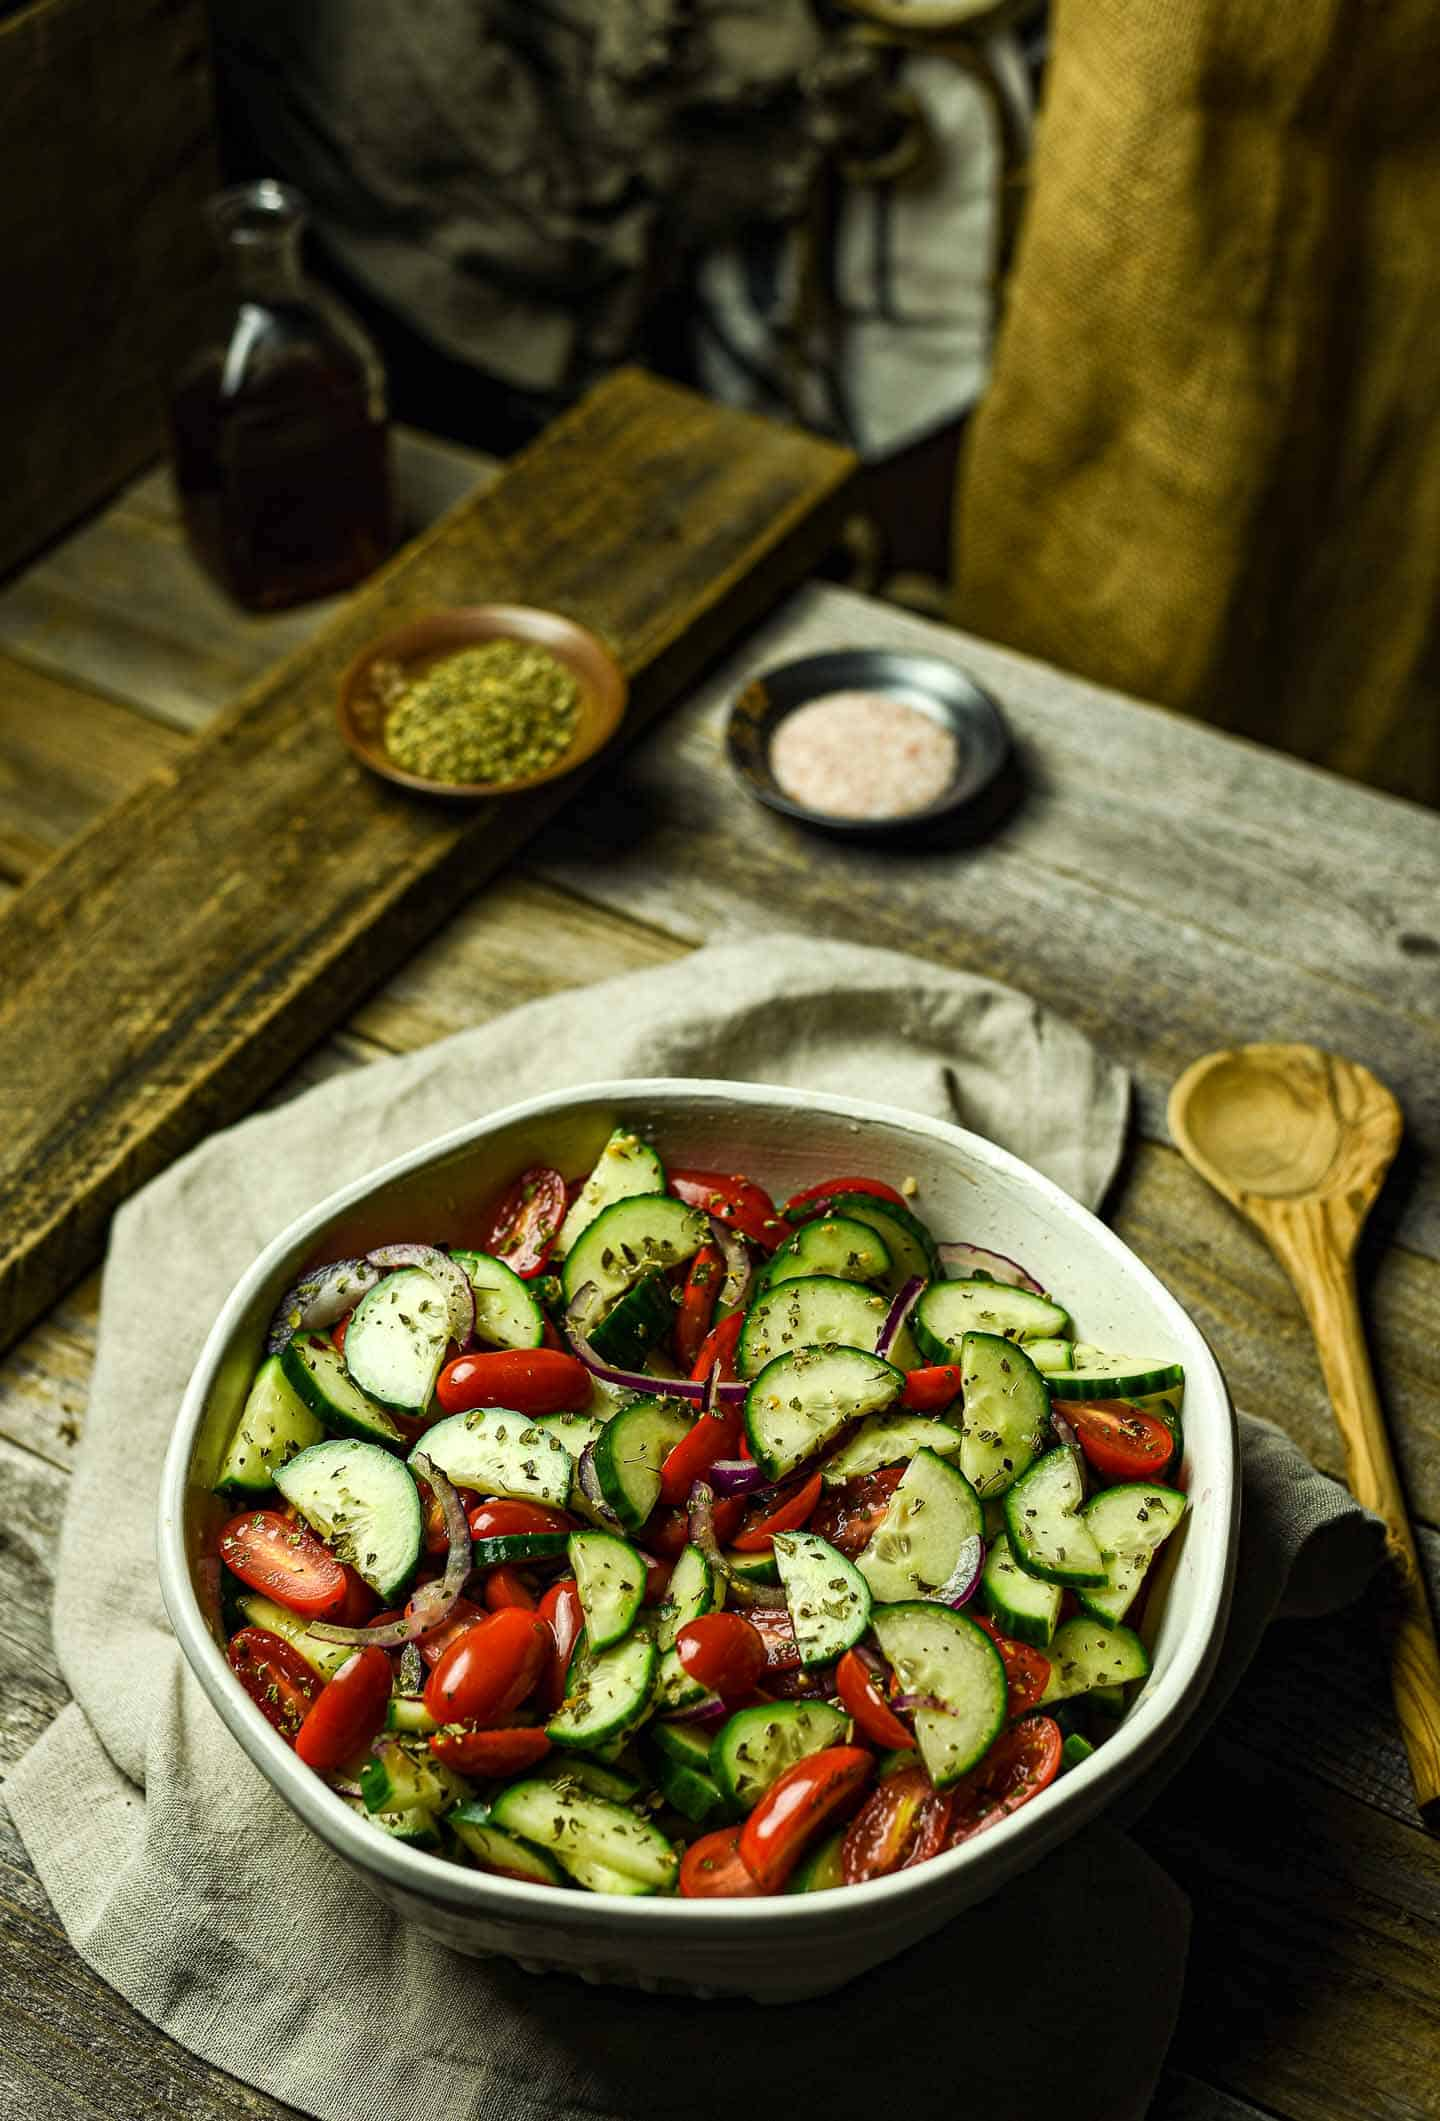 Cucumber tomato salad in large bowl.